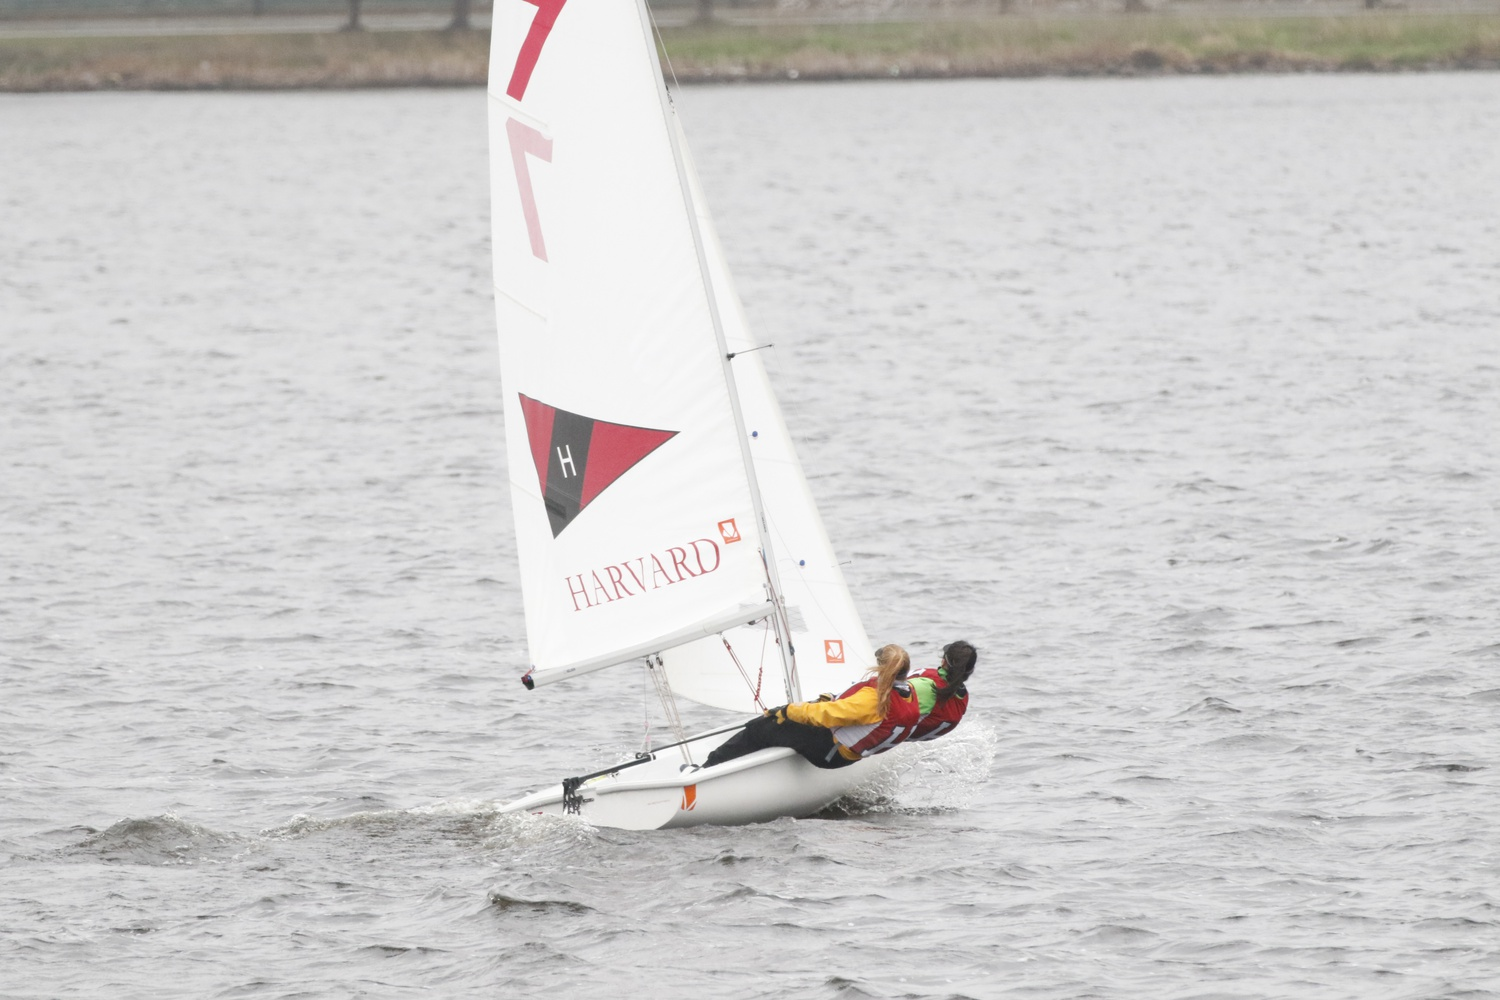 The Crimson takes the water in 2019, the last regular season of Harvard sailing. The intervening layoff since the 2019 campaign has presented challenges in establishing rhythm and executing clean starts.